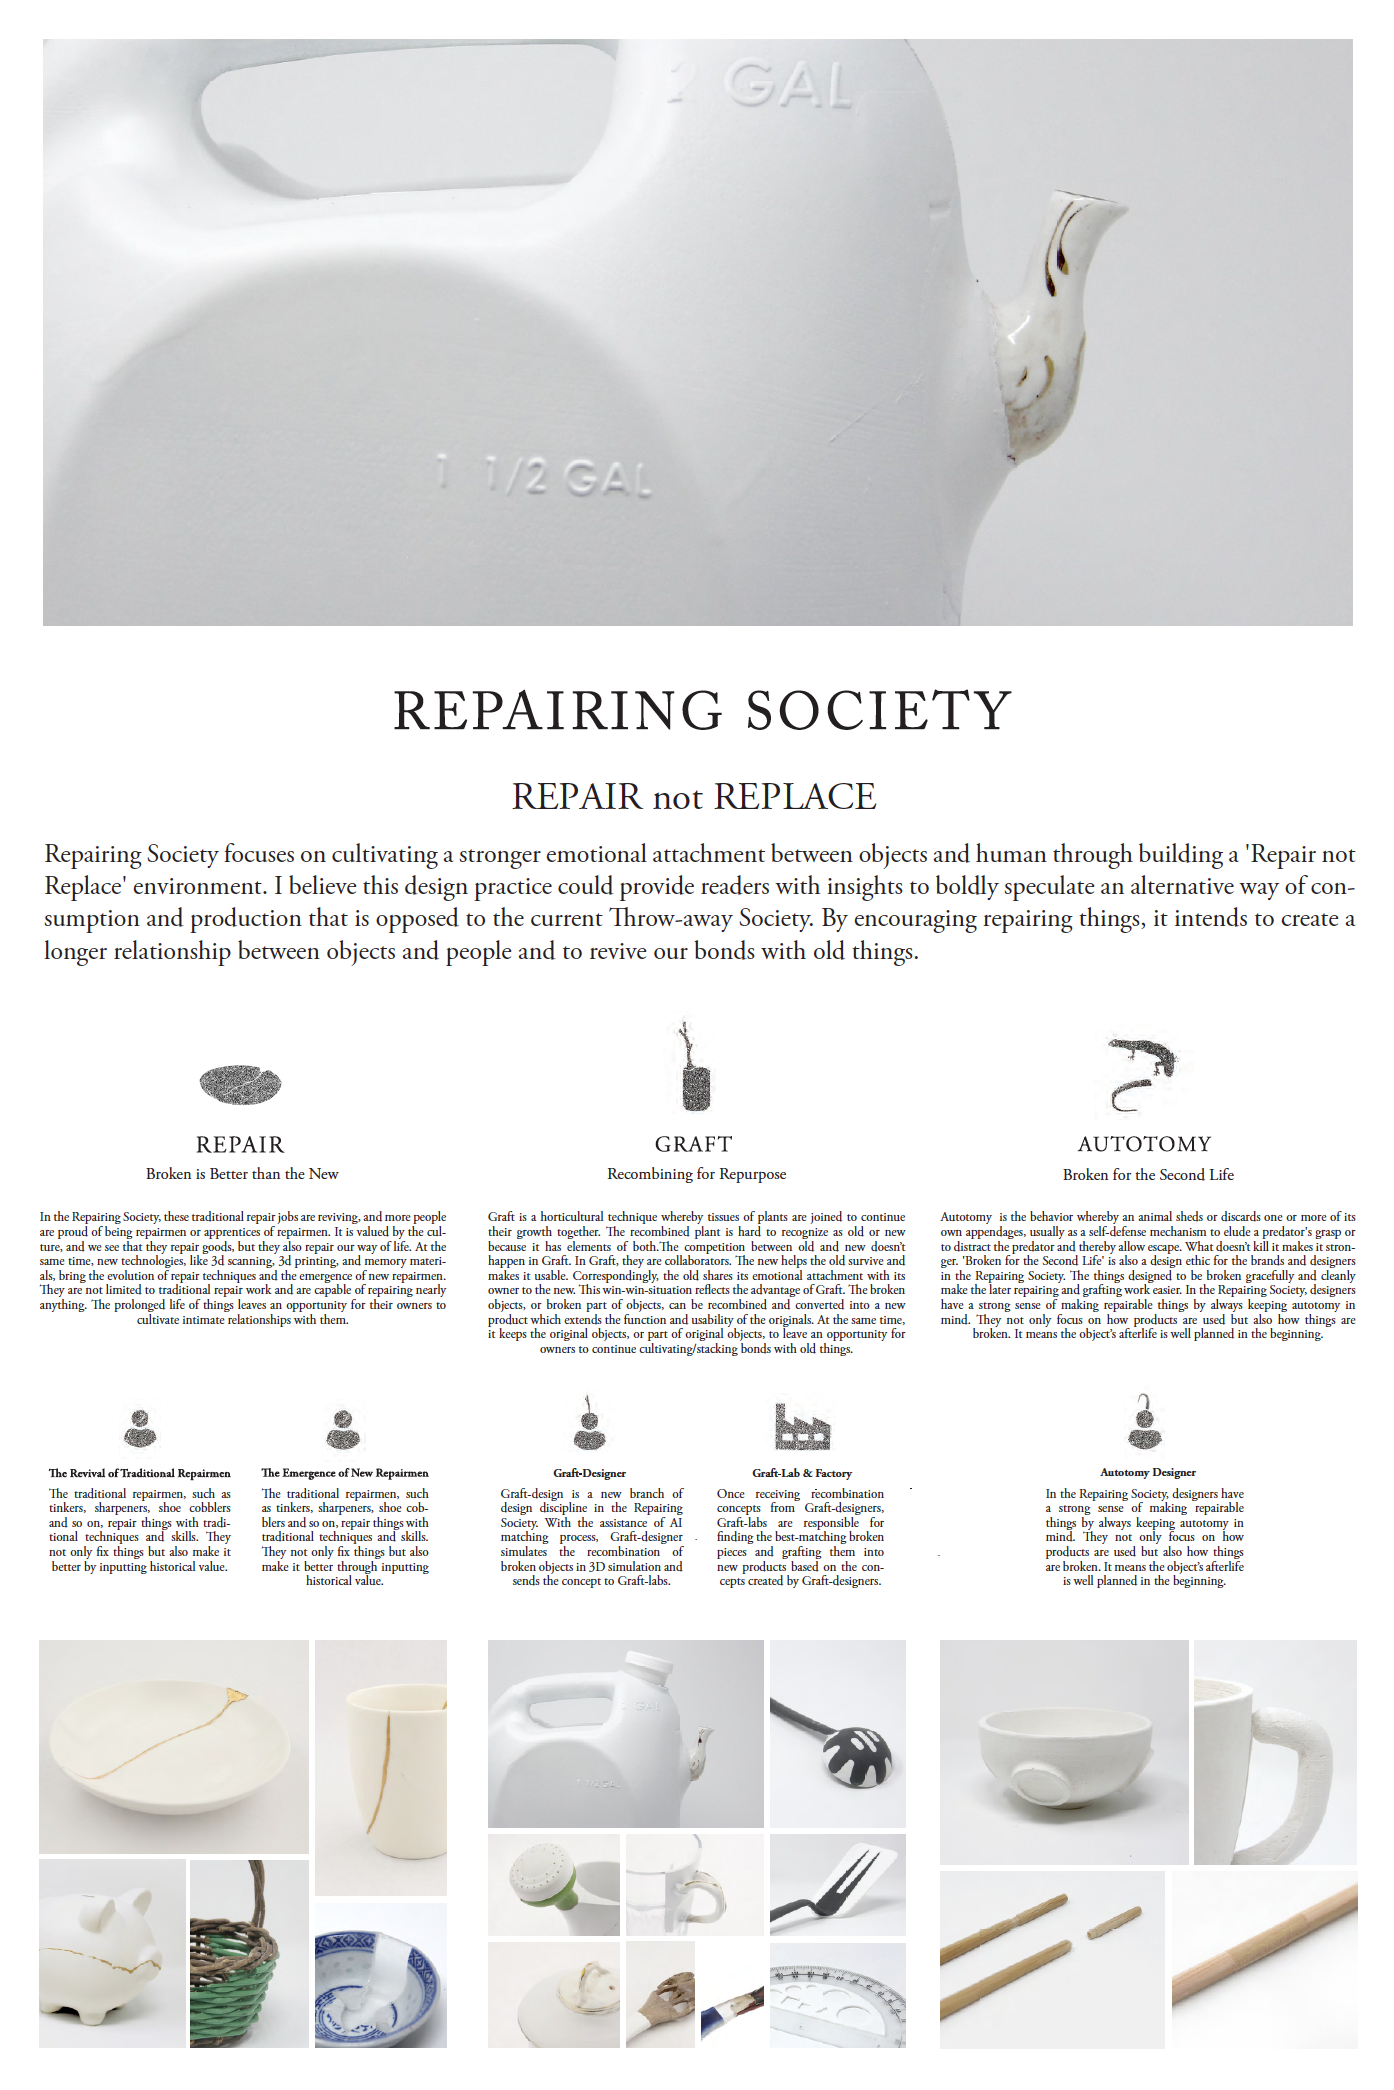 Repairing Society focuses on cultivating a stronger emotional attachment between objects and human through building a 'Repair not Replace' environment. I believe this design practice could provide readers with insights to boldly speculate an alternative way of consumption and production that is opposed to the current Throw-away Society. By encouraging repairing things, it intends to create a longer relationship between objects and people and to revive our bonds with old things.